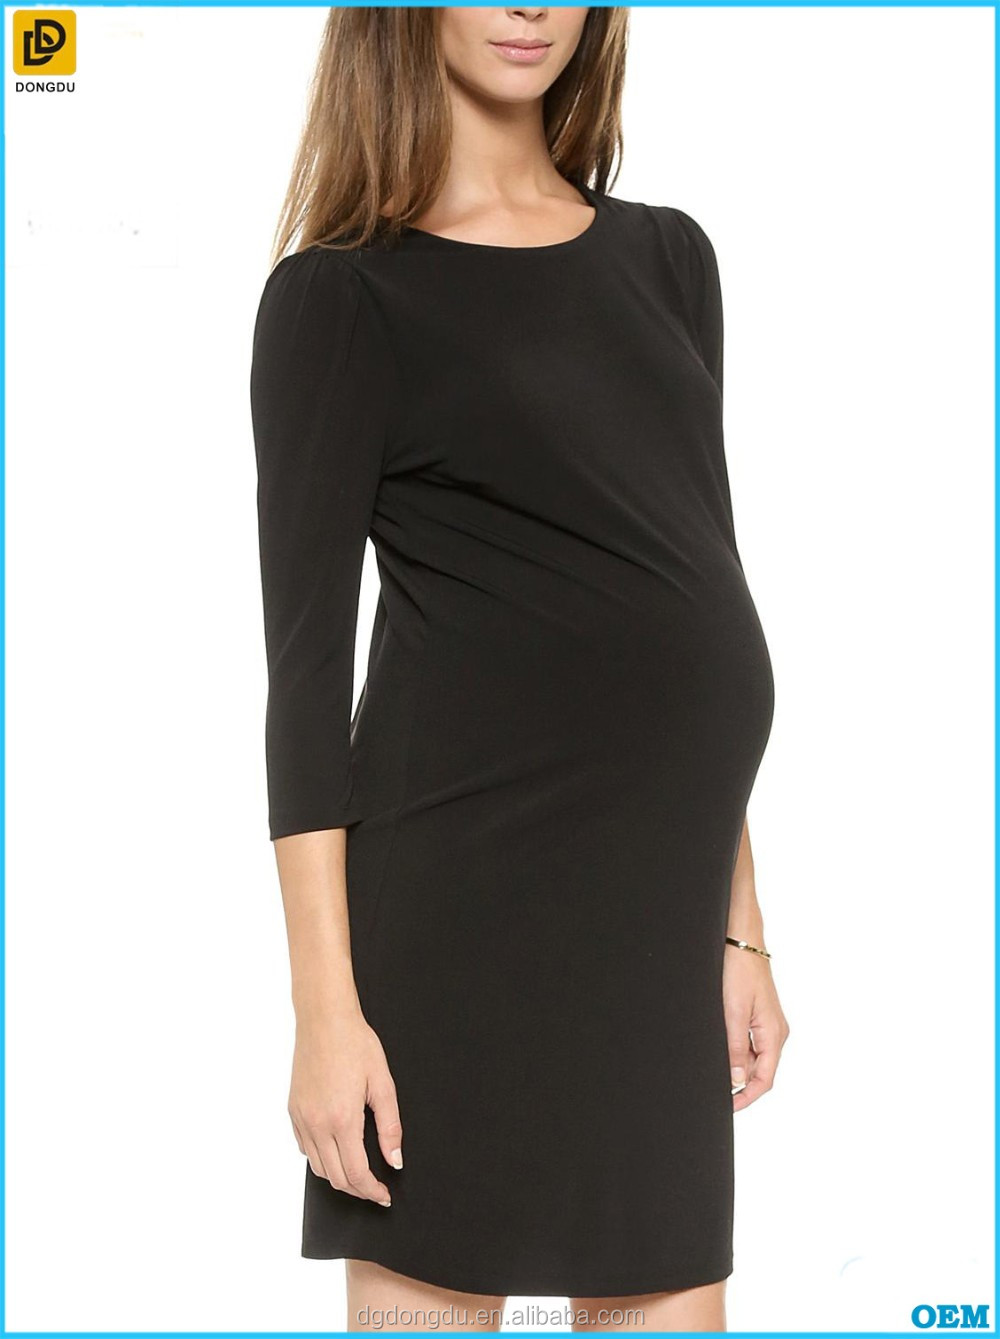 List manufacturers of maternity dress black buy maternity dress 2017 wholesale black office maternity dresses for office lady ombrellifo Image collections